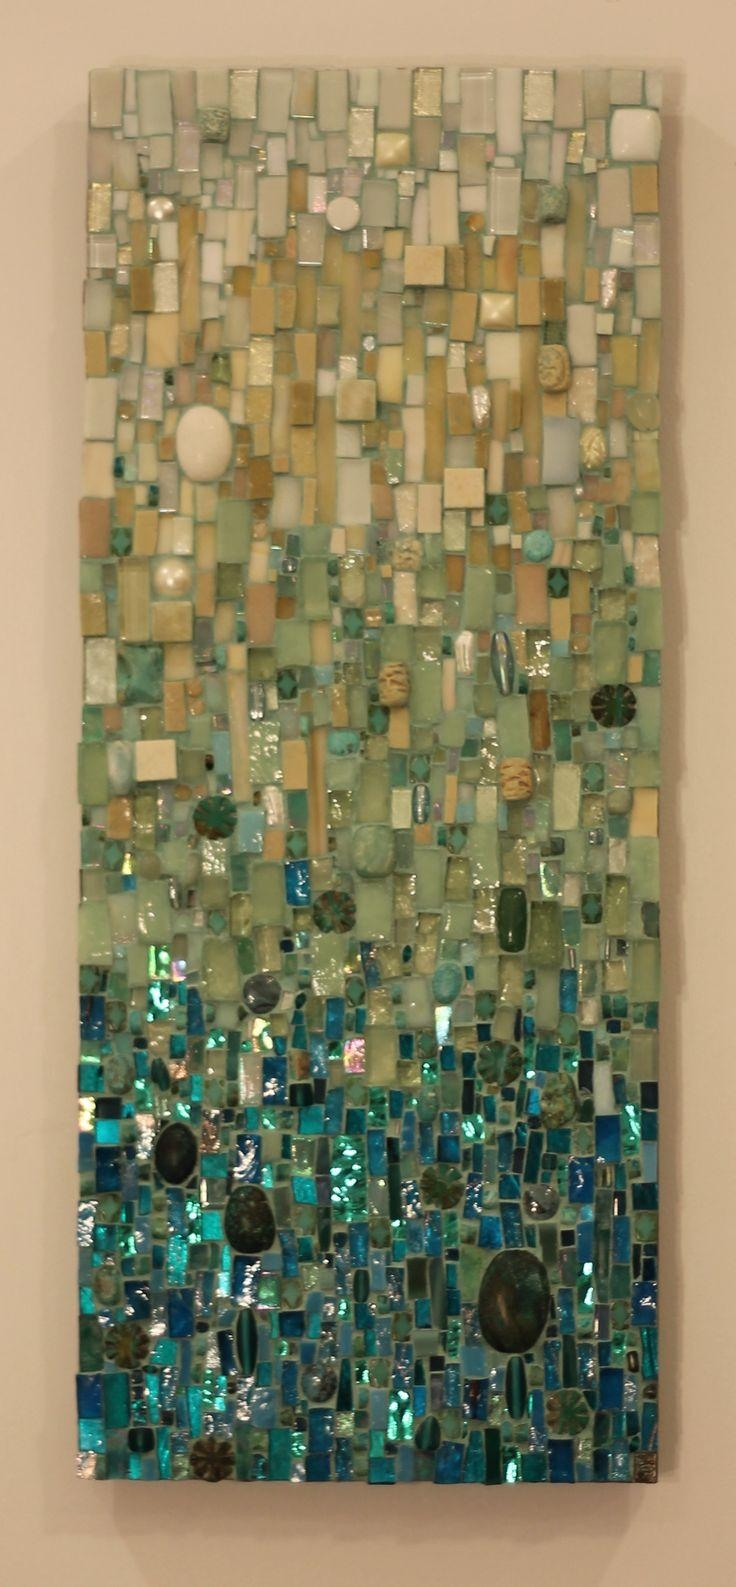 Best 25+ Mosaic Wall Art Ideas On Pinterest | Mosaic Tile Art Intended For Diy Mosaic Wall Art (Image 8 of 20)